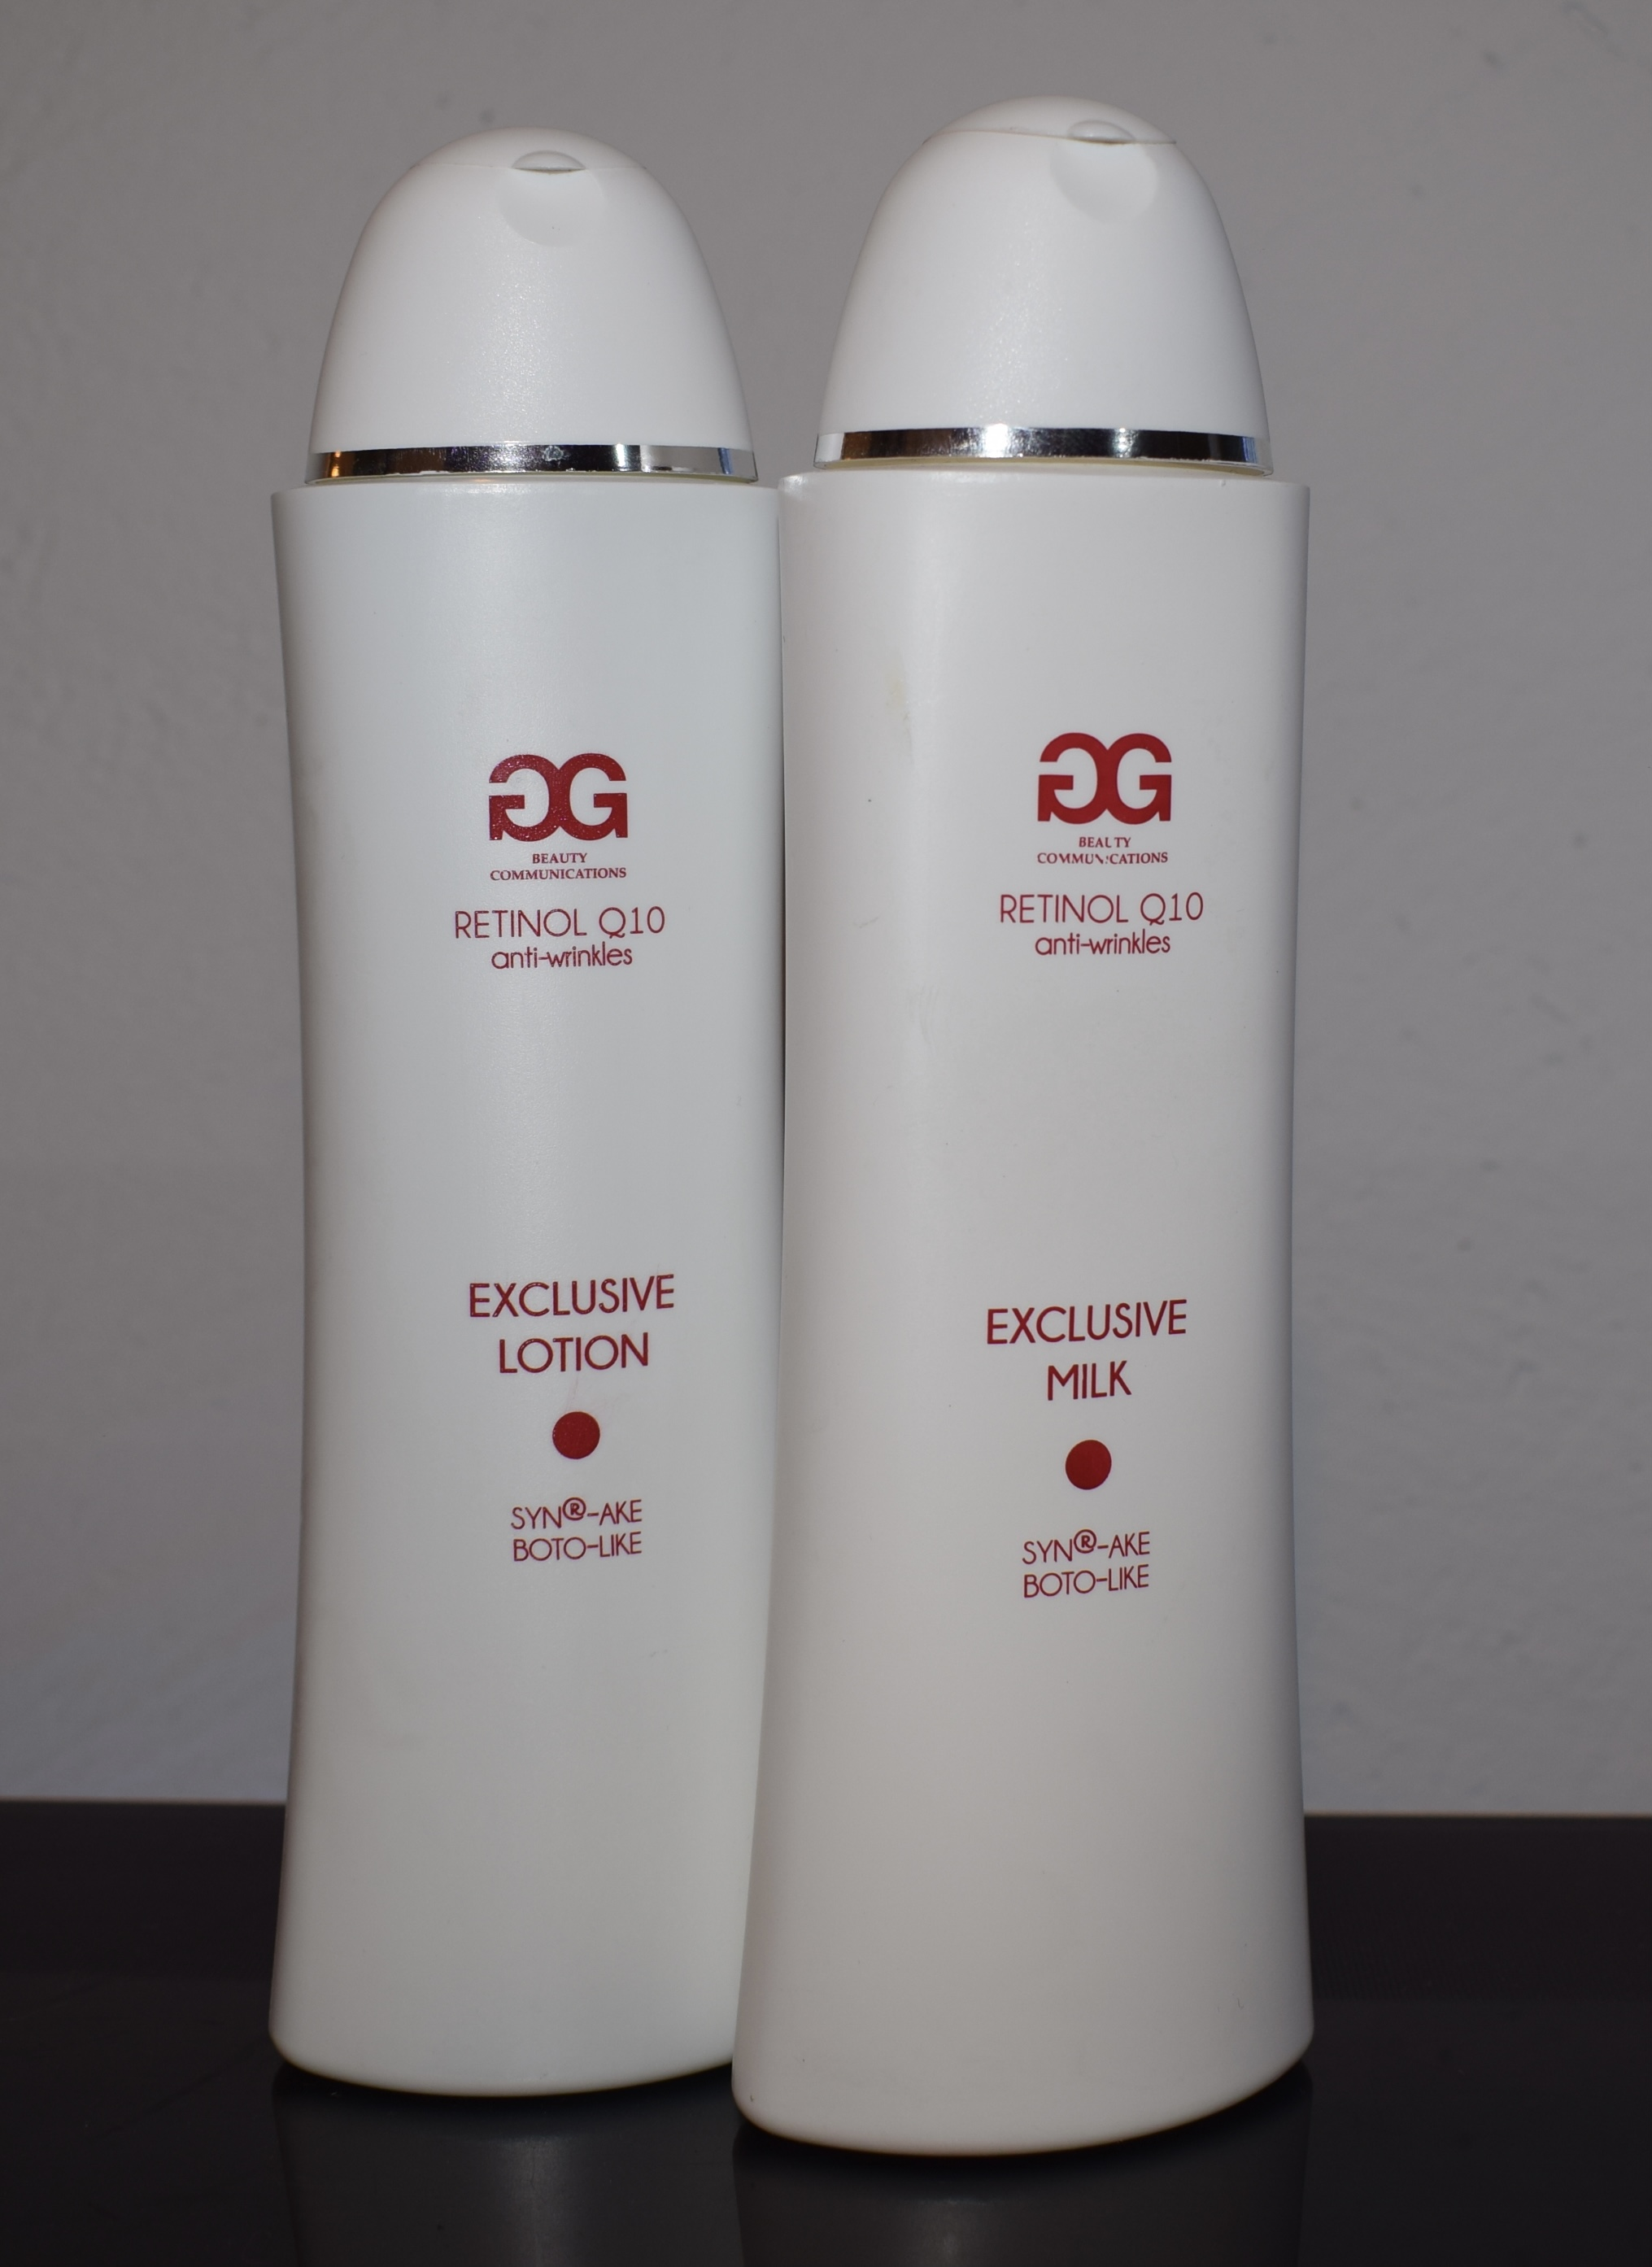 2G - Exclusive Lotion/Milk - Kit detersione viso Q10 retinolo anti age